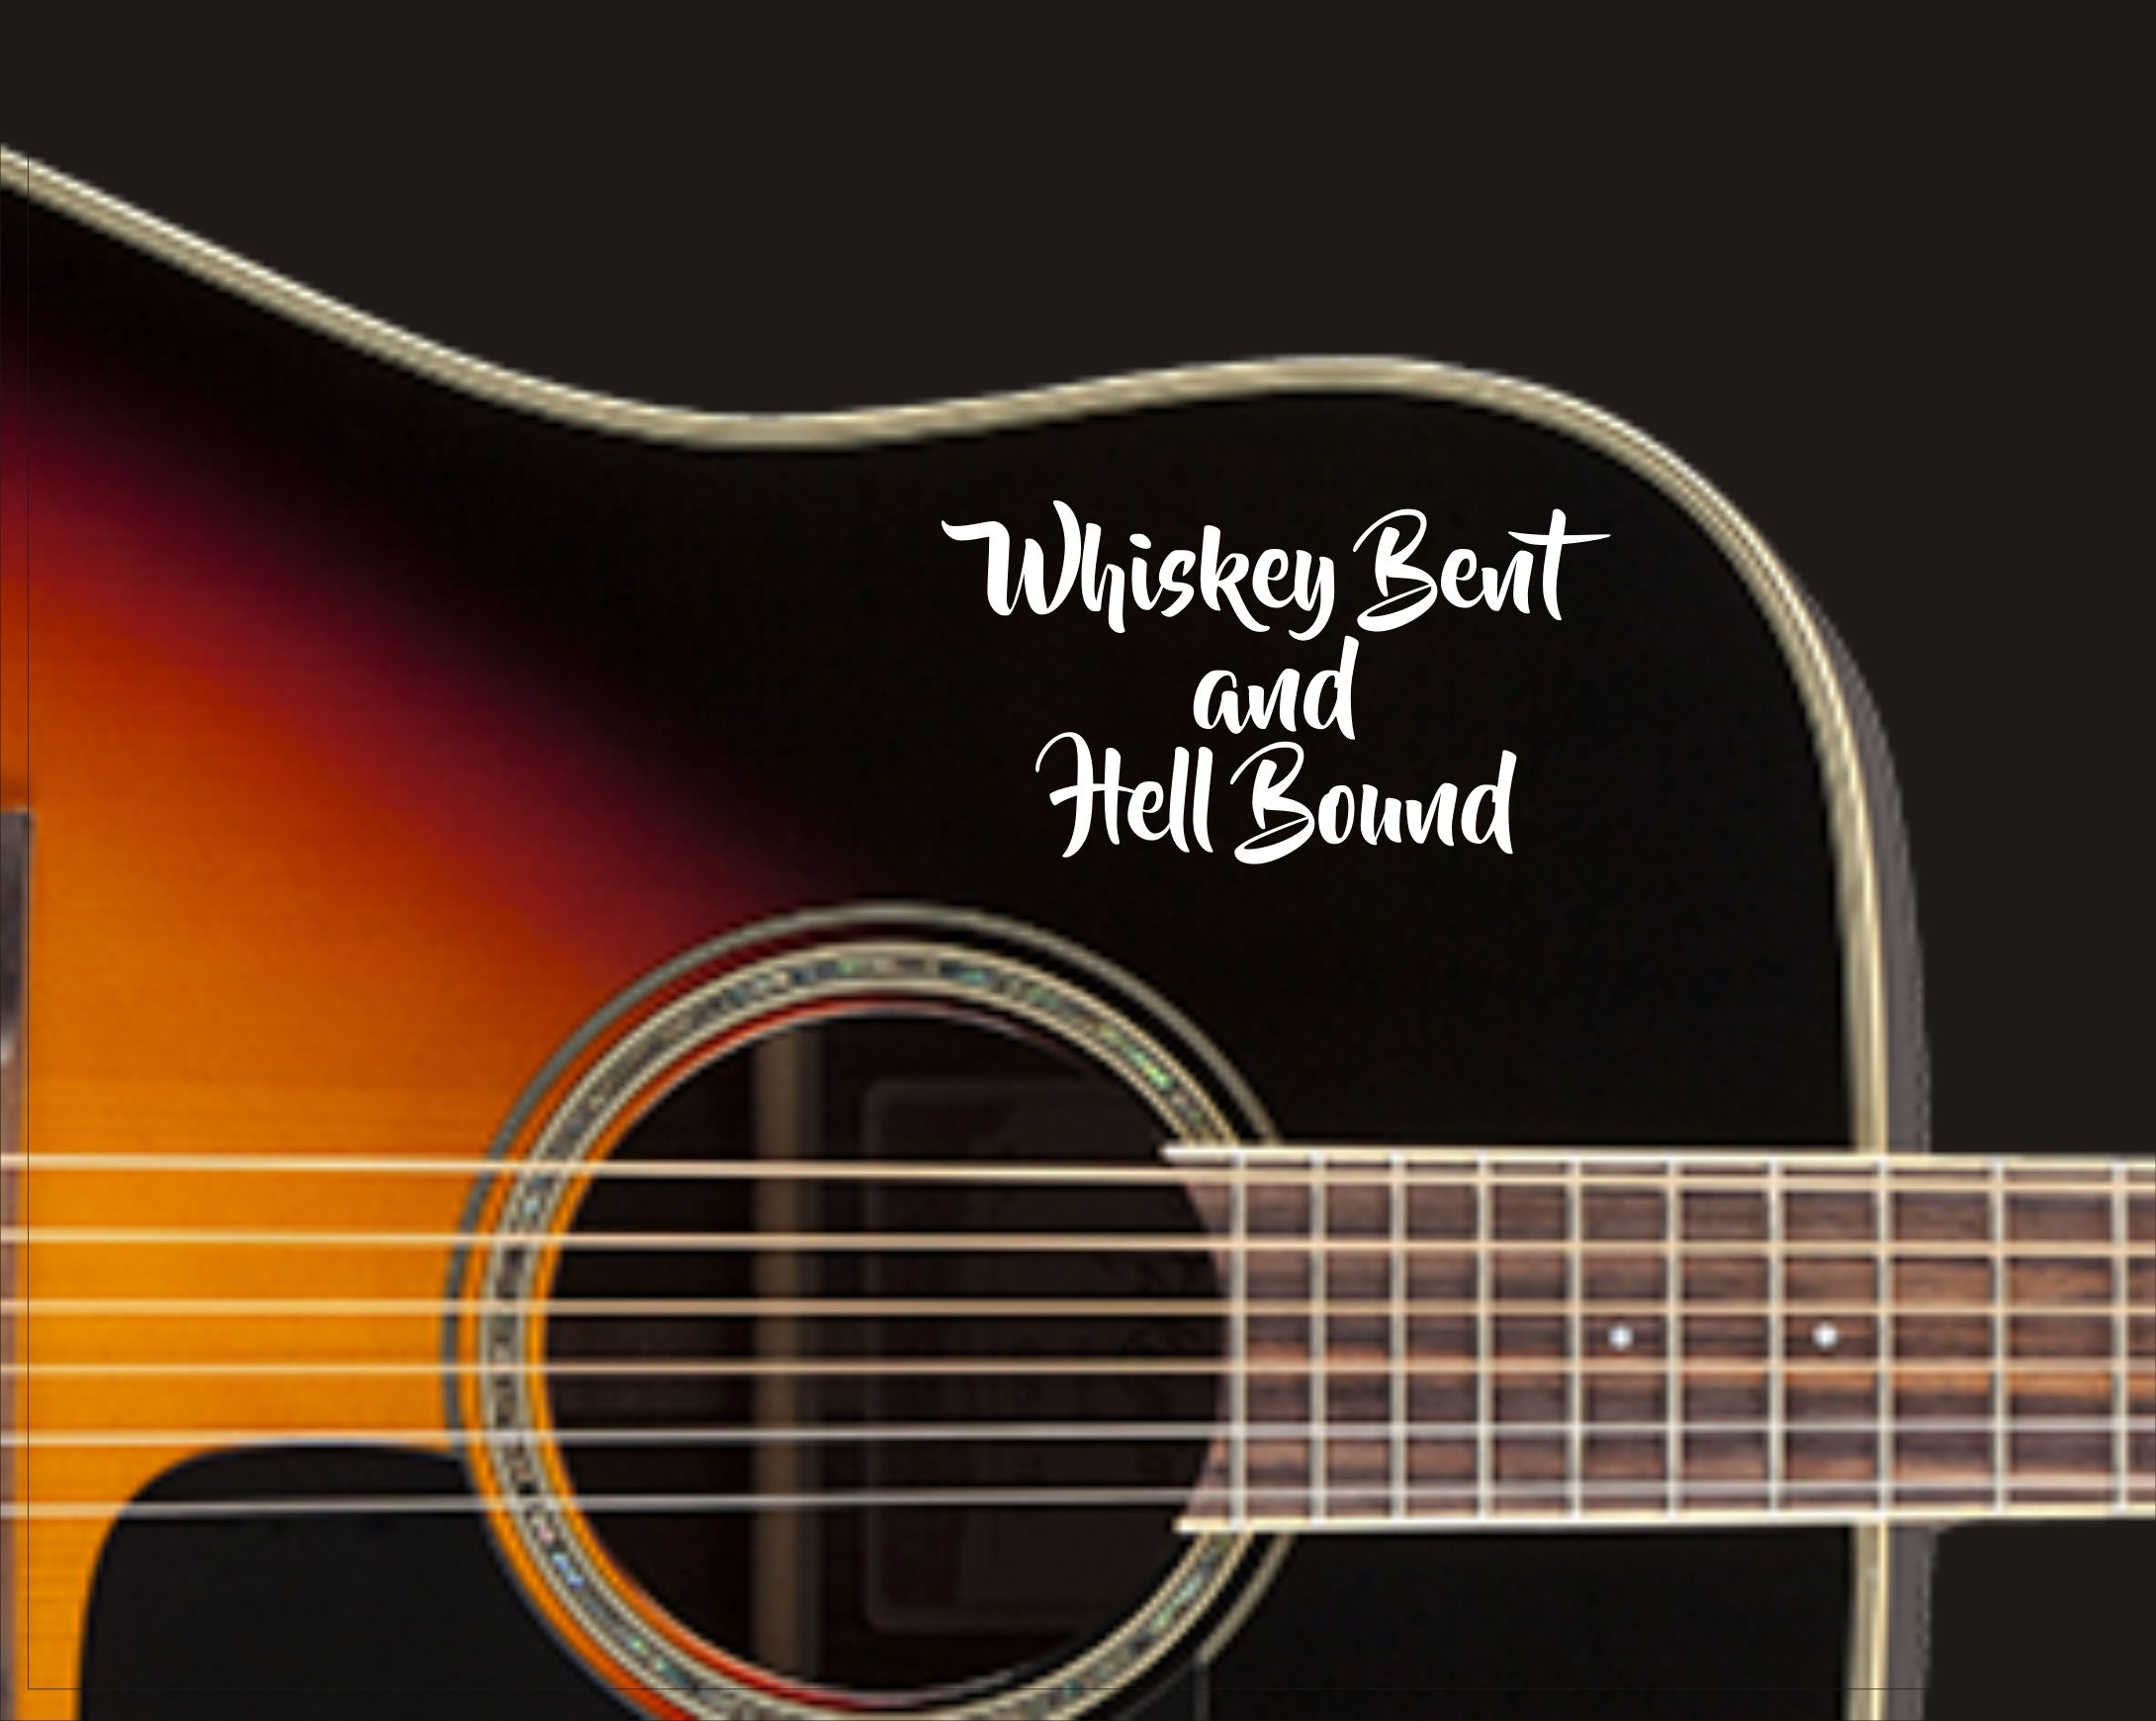 Whiskey Bent and Hell Bound vinyl decal, Country music